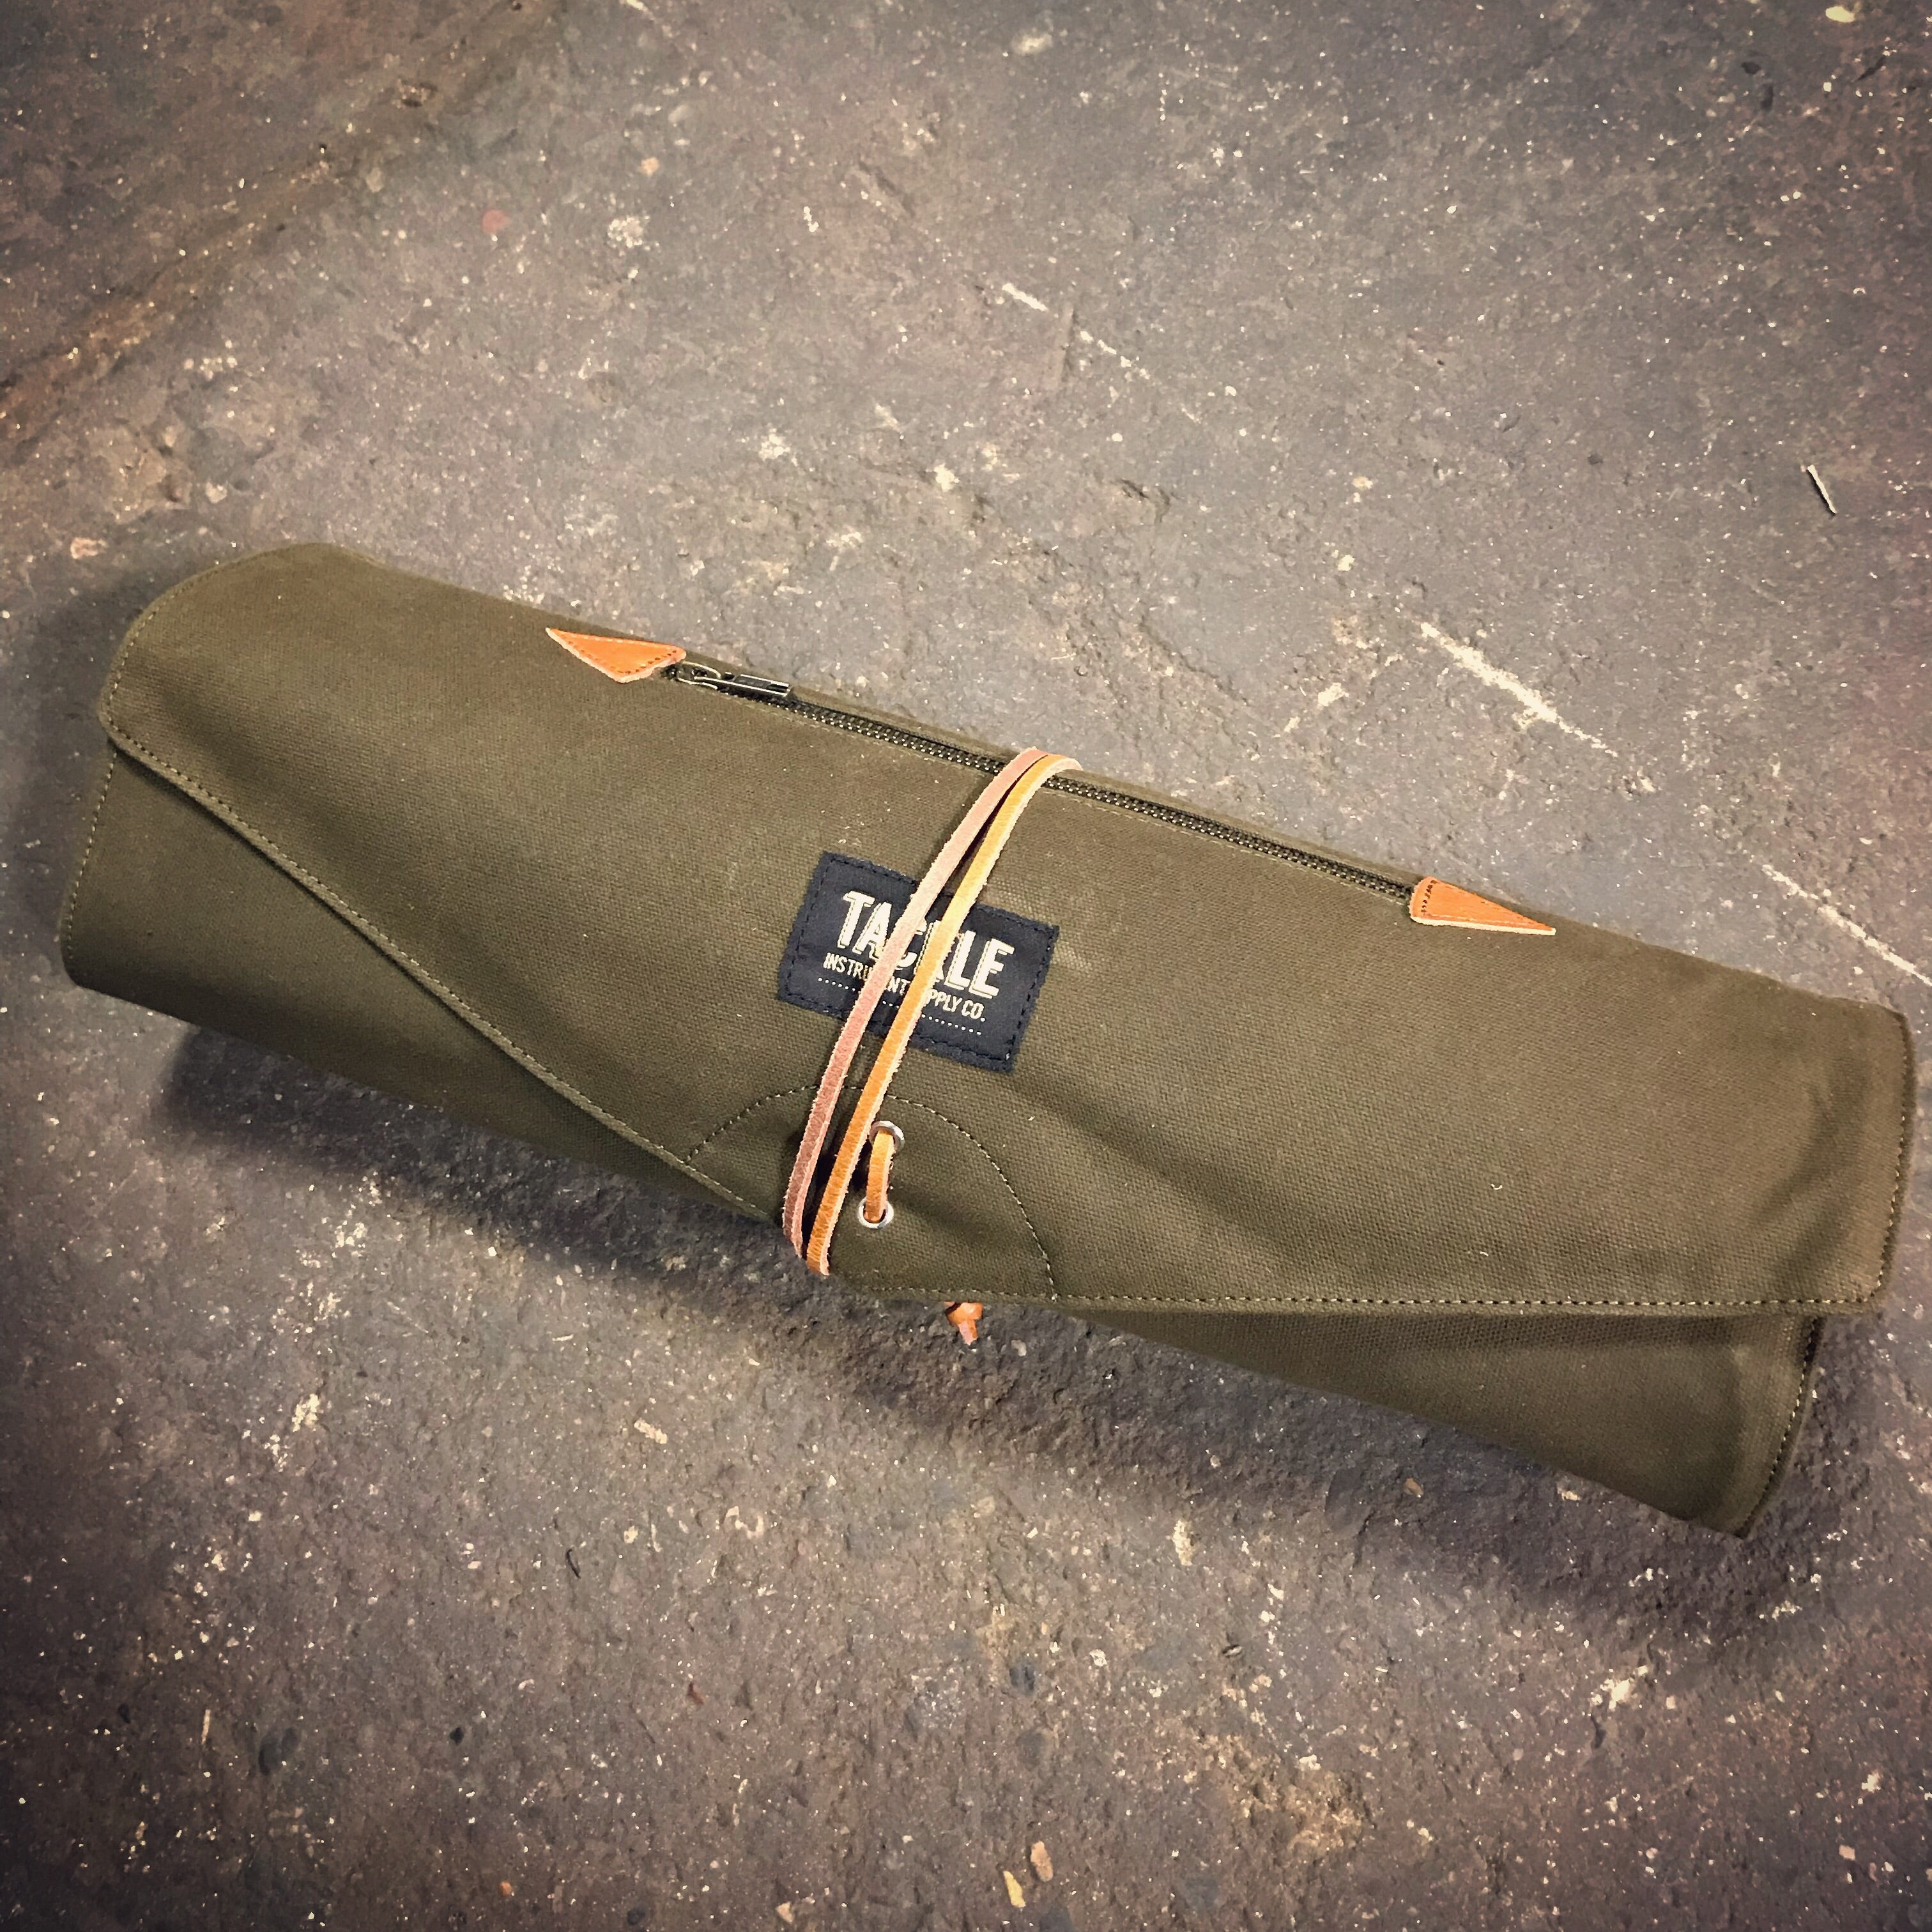 Waxed Canvas Stick Roll Up Bag Tackle Instrument Supply Co